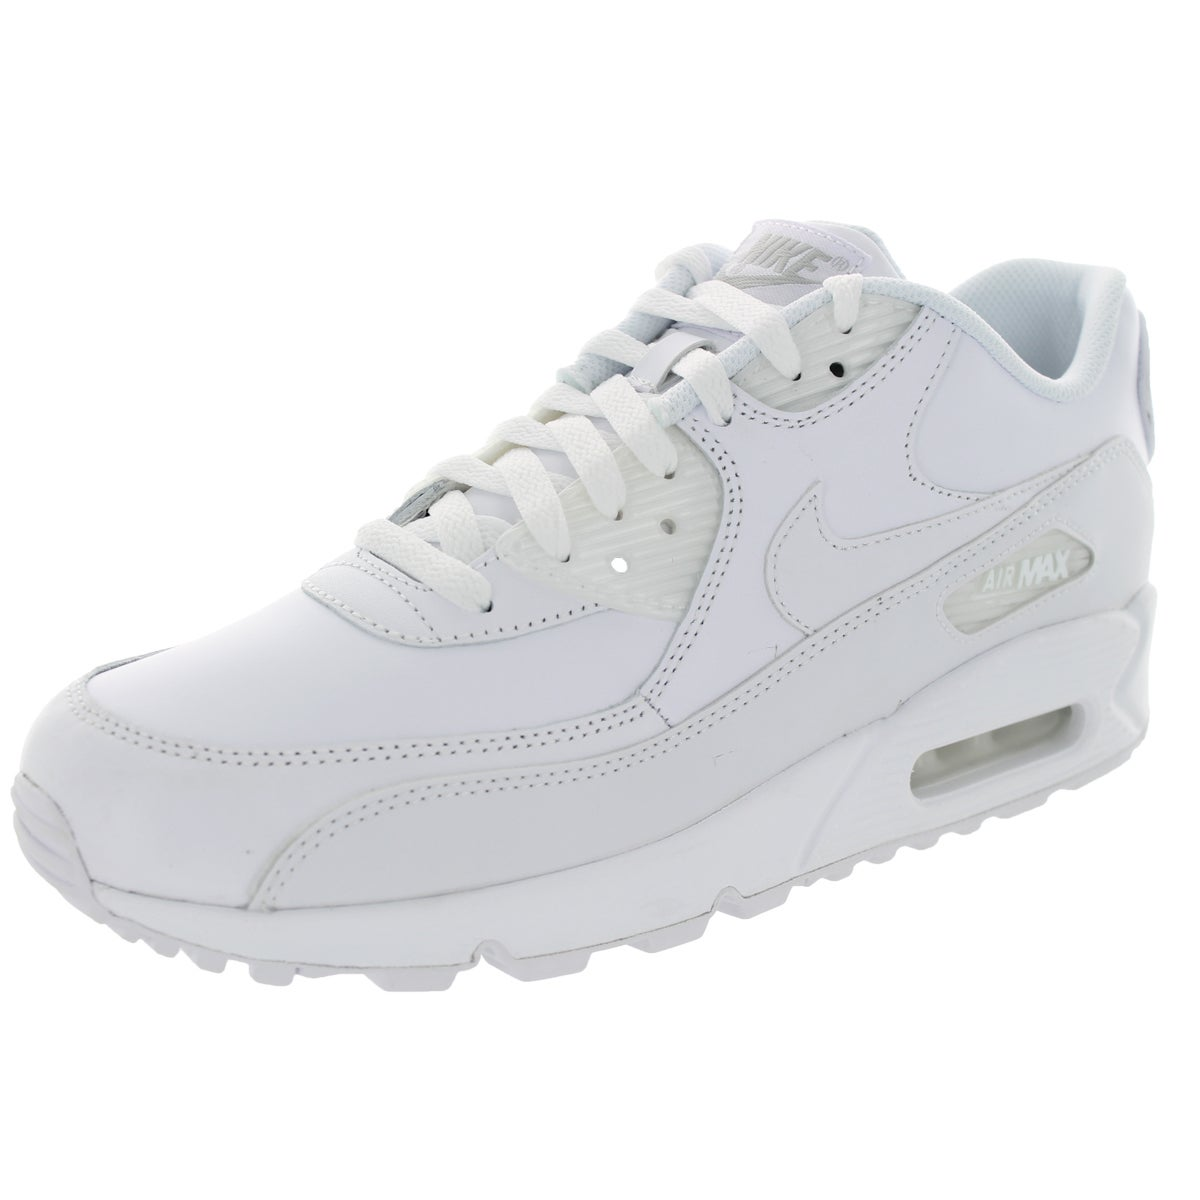 Nike Men's Air Max 90 White Leather Size 10.5 Running Sho...